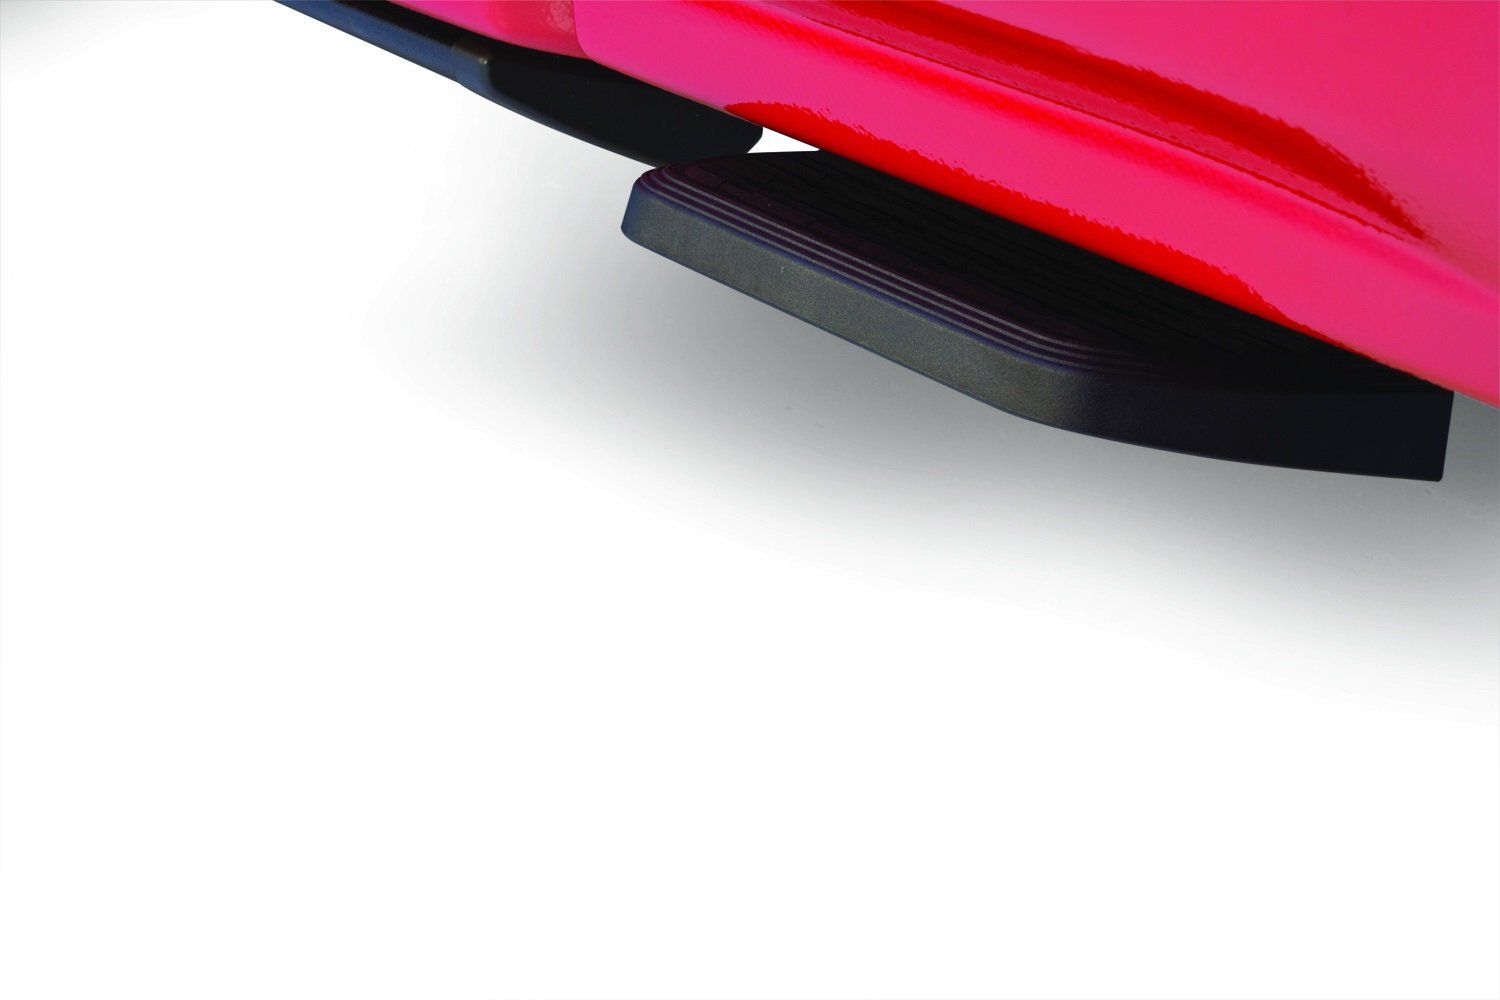 AMP Research 75407-01A BedStep2 Retractable Truck Bed Side Step for 2014-2019 Silverado & Sierra 1500, 2015-2019 Silverado & Sierra 2500/3500 (All Beds)